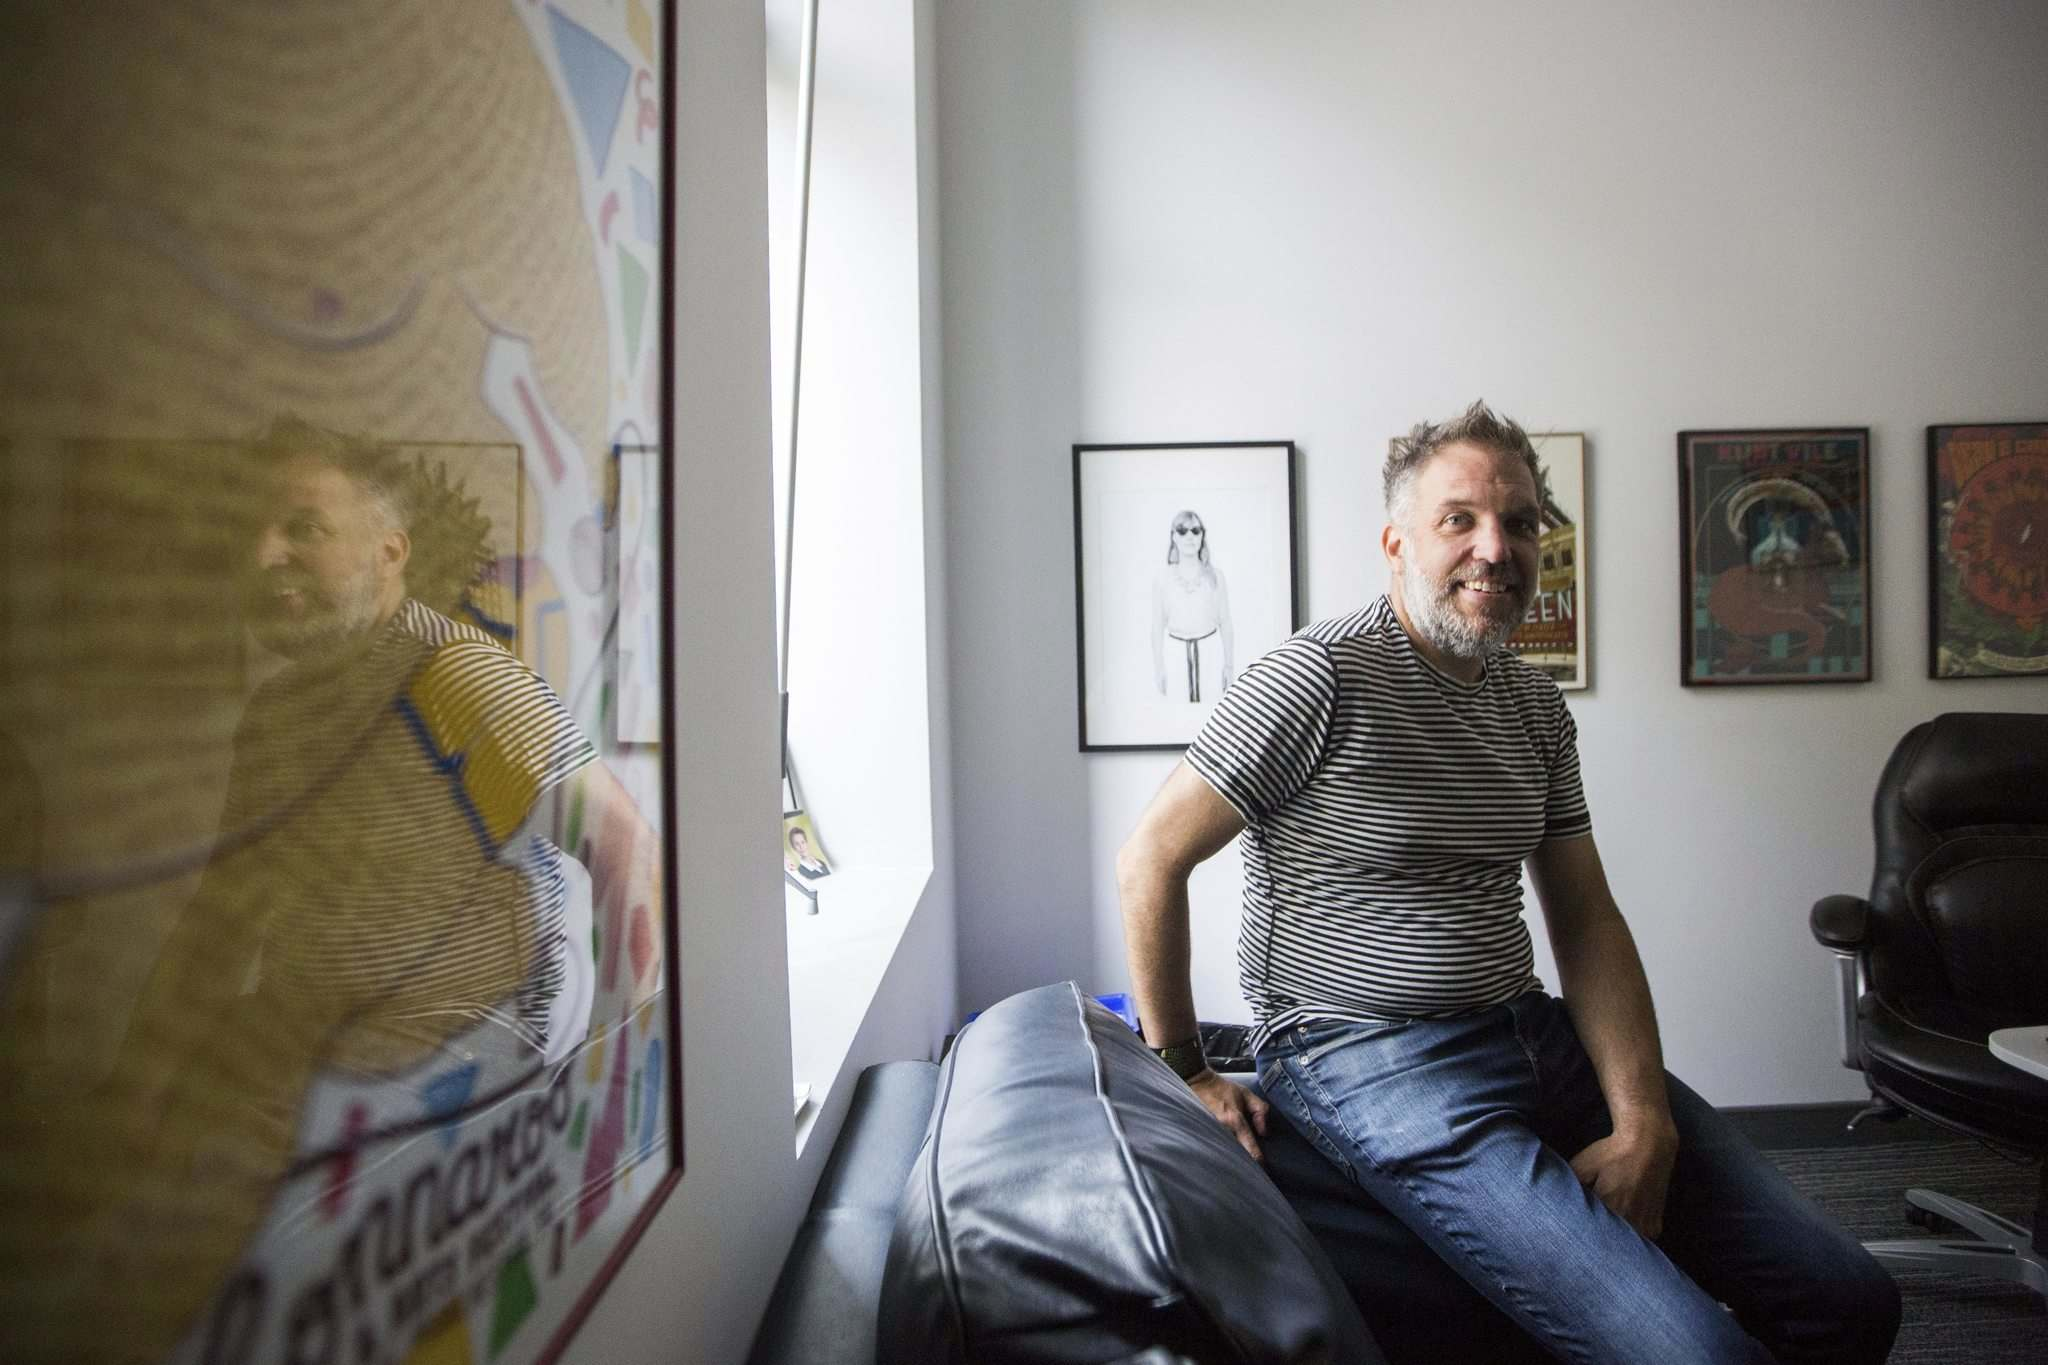 Chris Frayer's career as an artistic director has become a creative outlet and a major part of his identity. (Mikaela MacKenzie / Winnipeg Free Press)